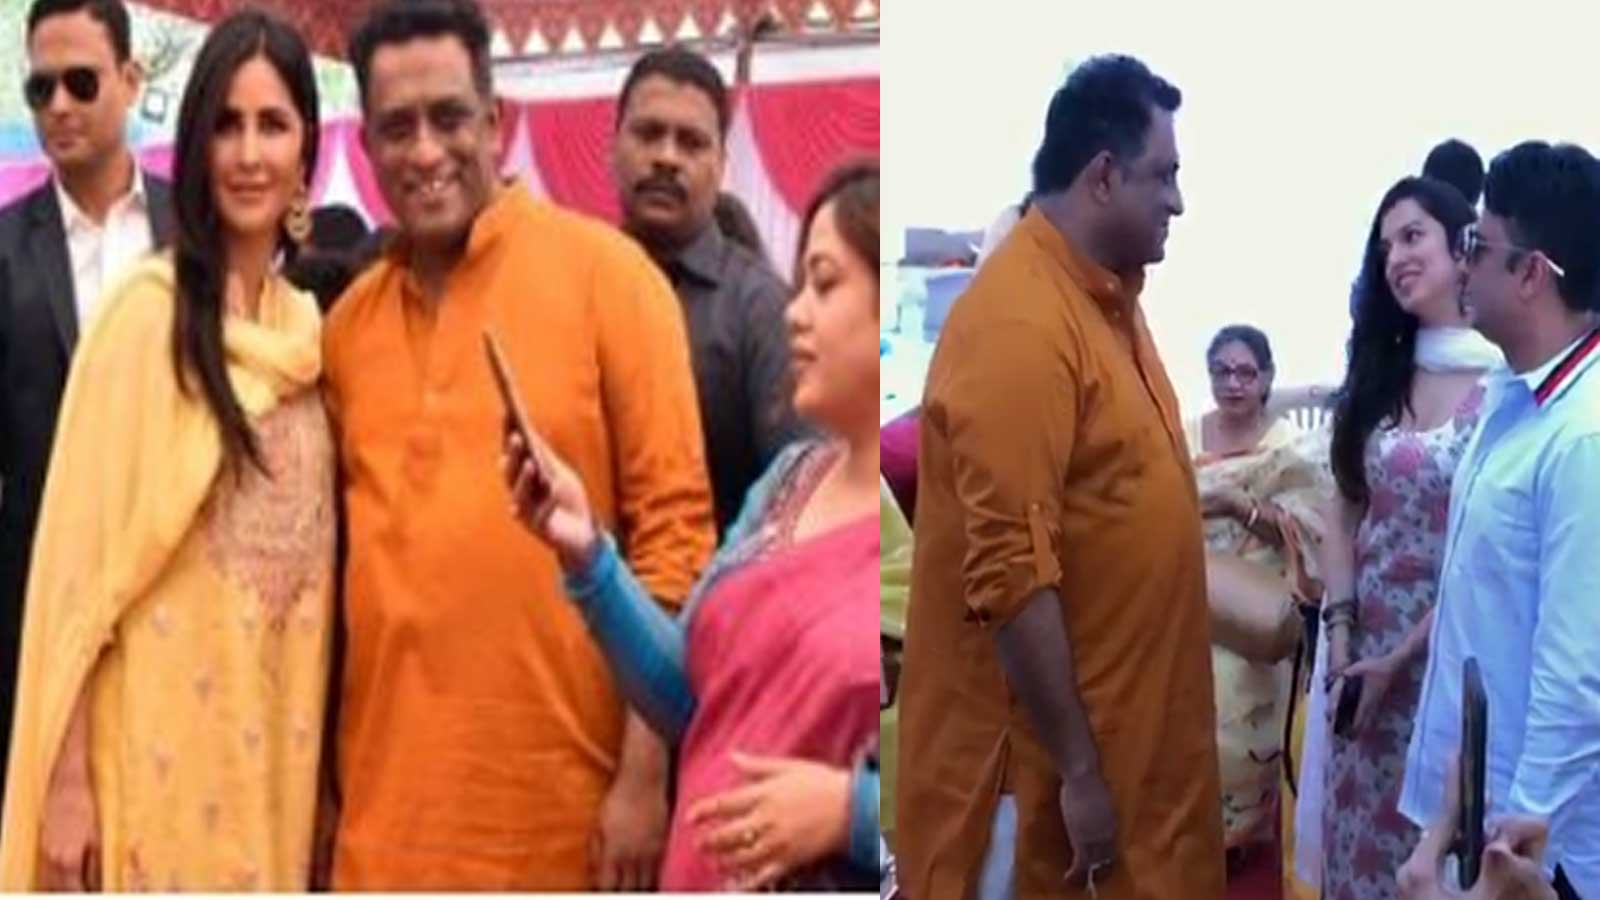 From Katrina Kaif to Abhishek Bachchan, celebrities at Anurag Basu's Saraswati puja event